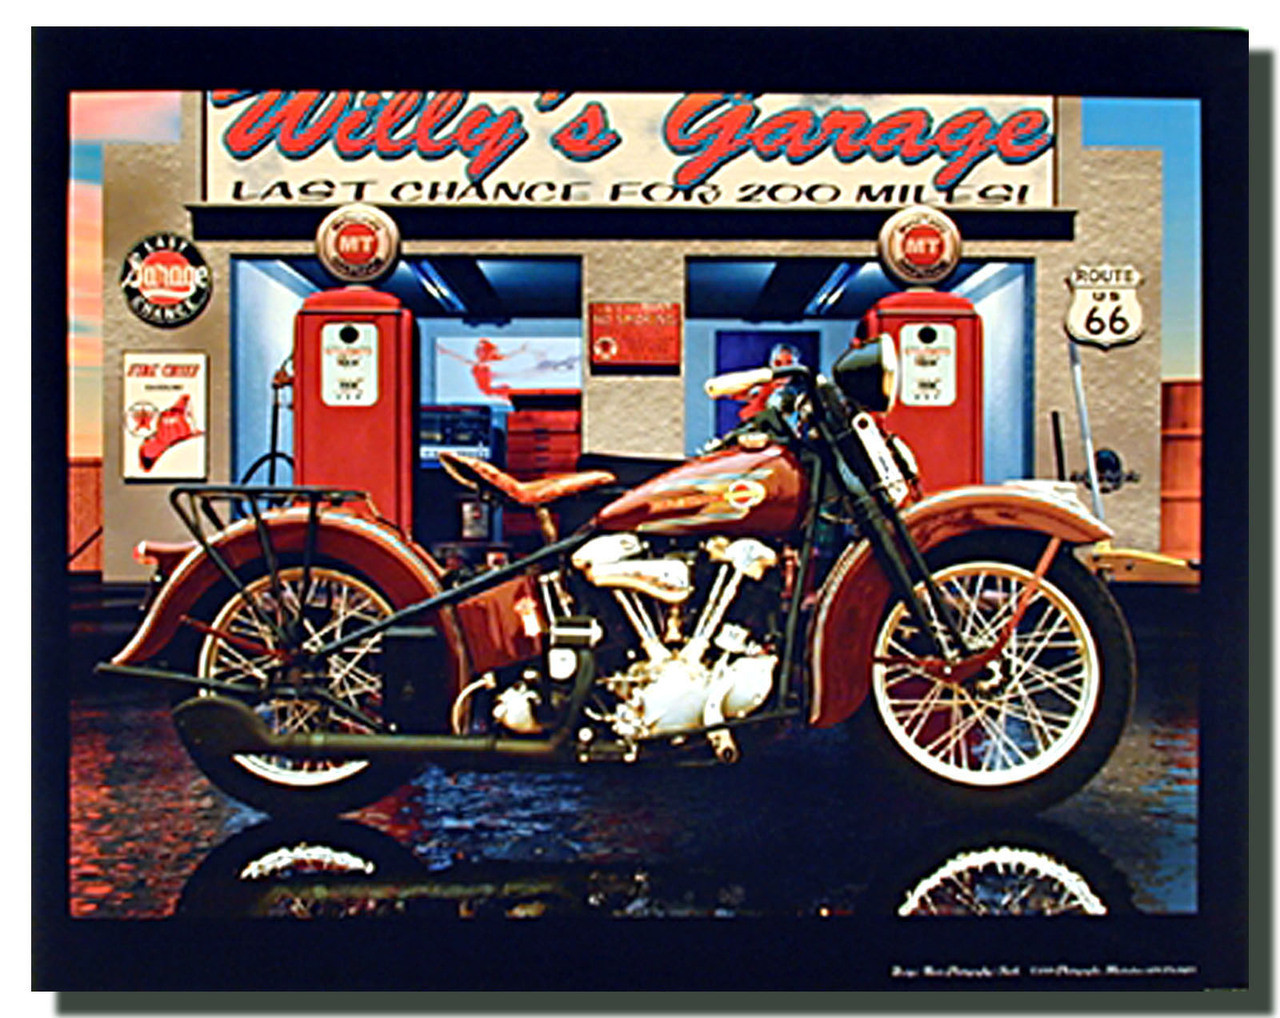 Harley Davidson Willy S Garage Motorcycle Poster Motorcycle Posters